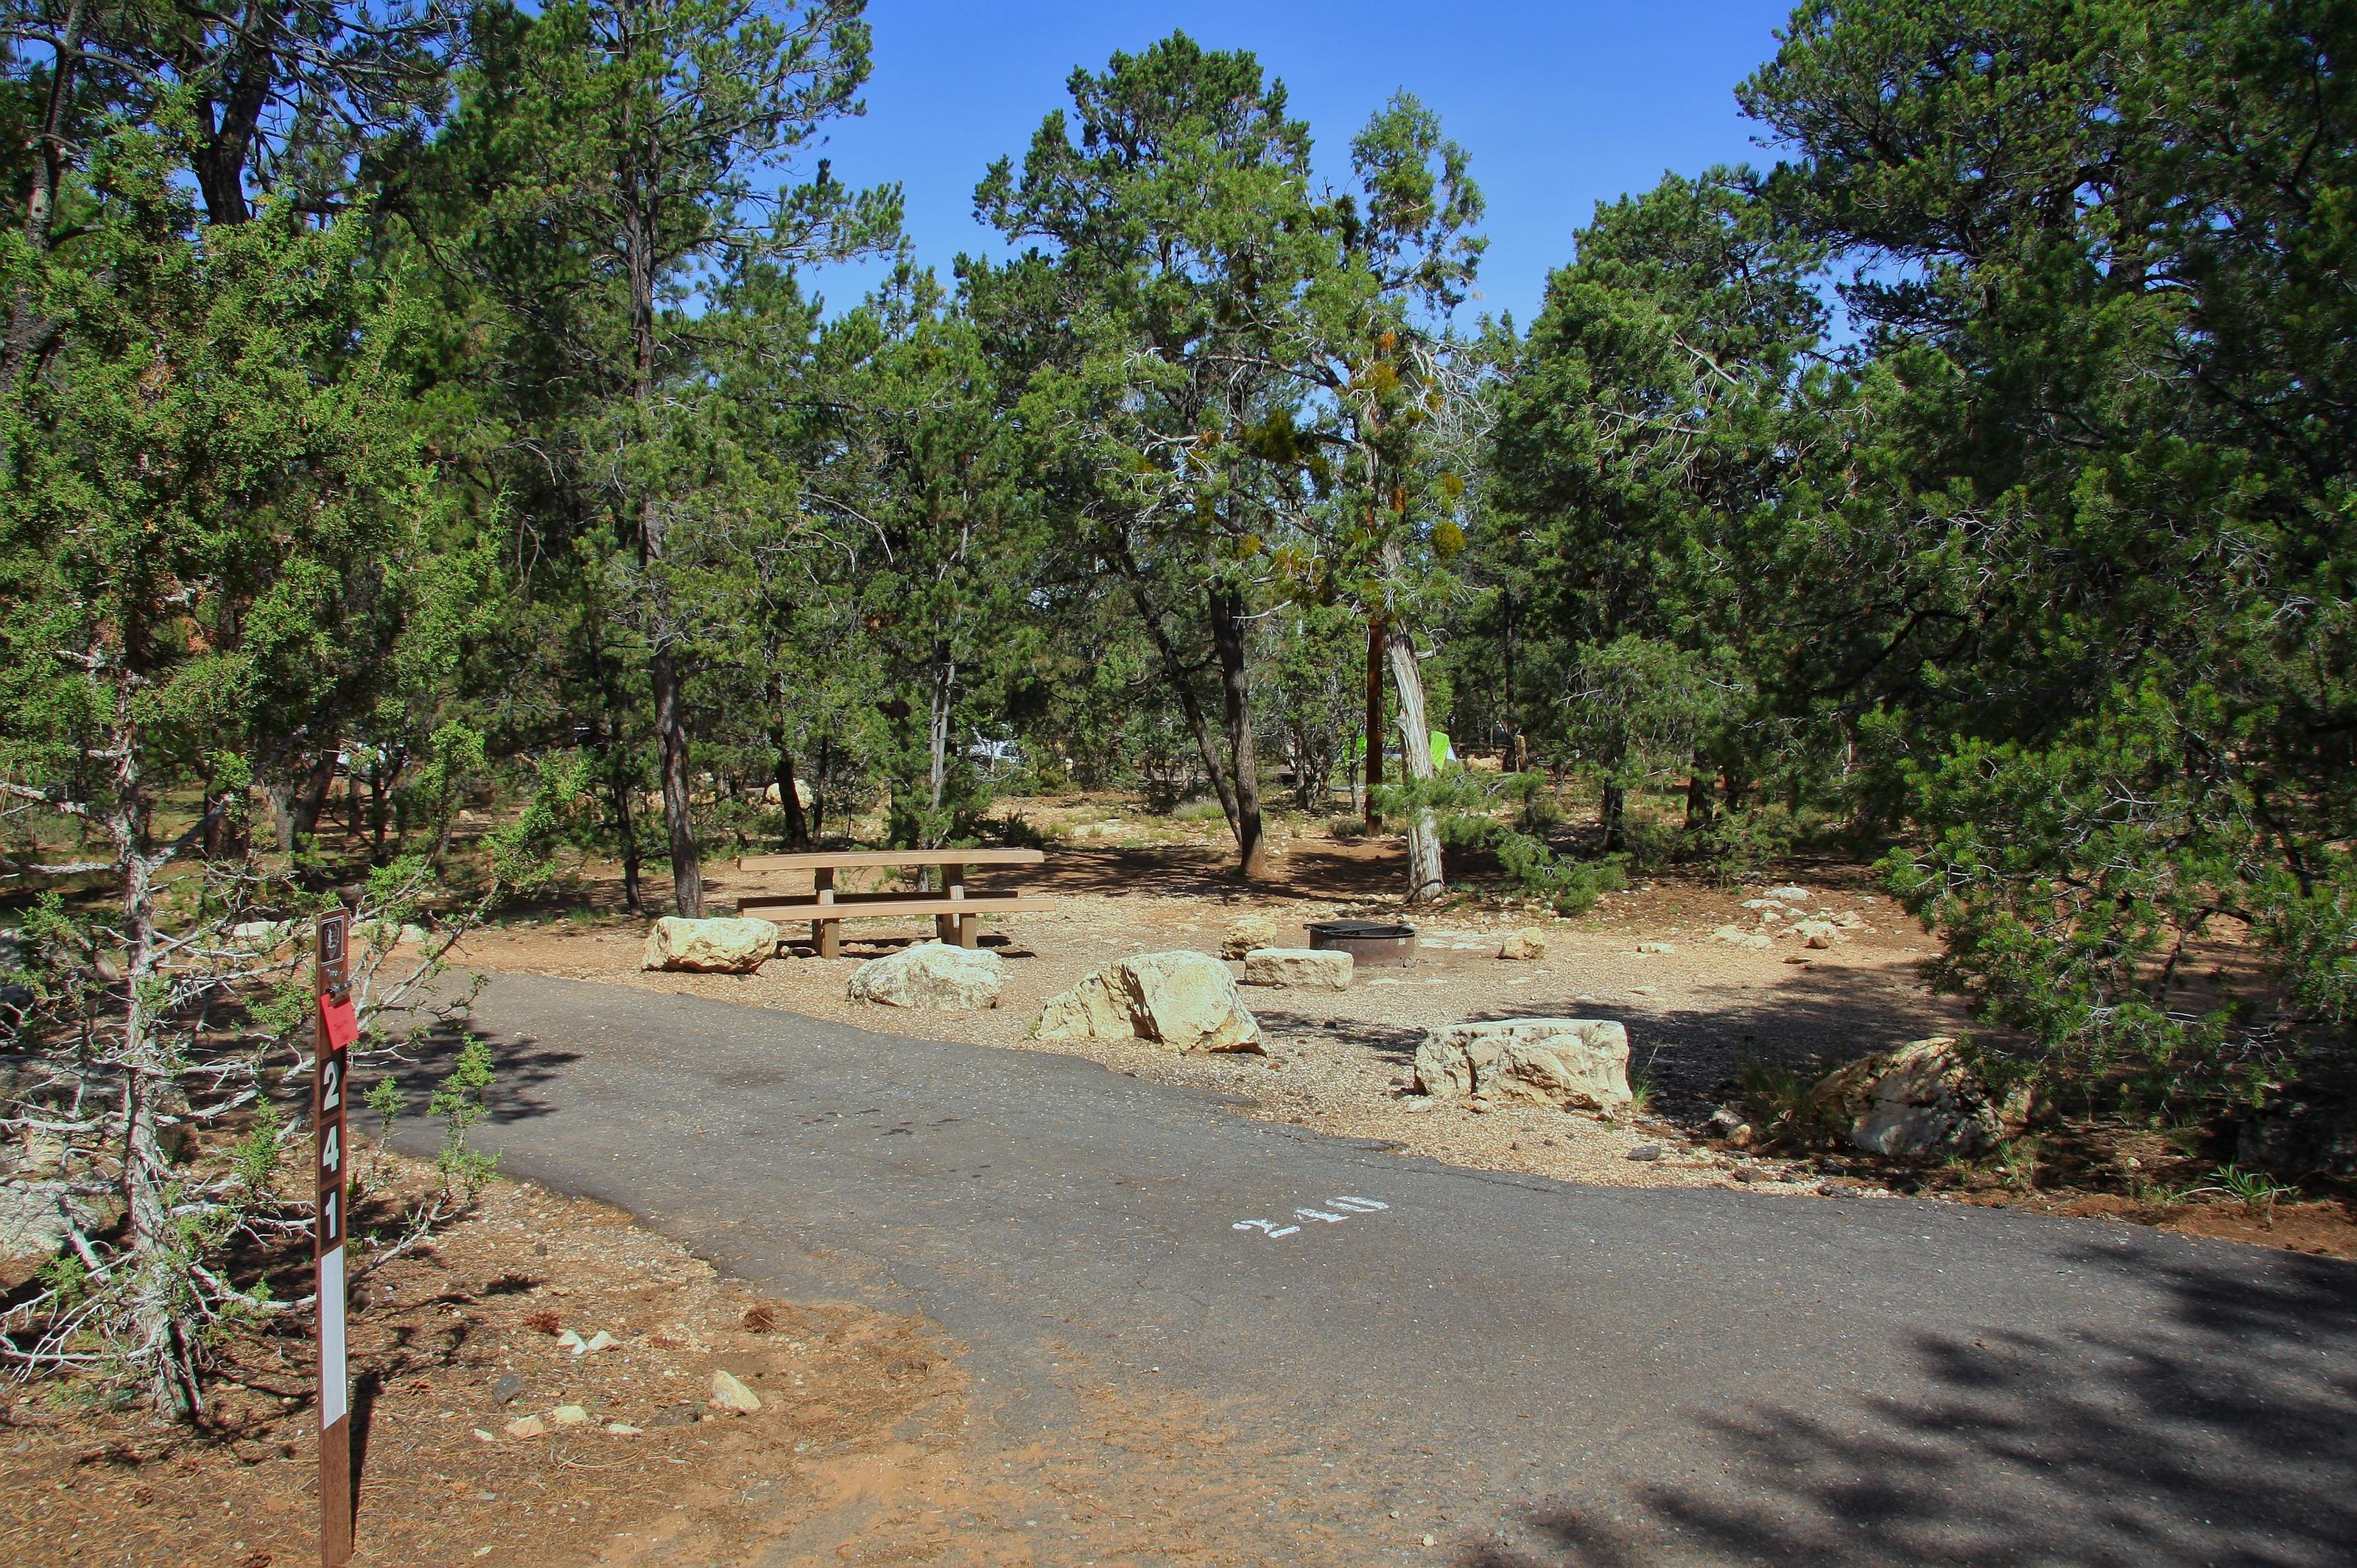 Picnic table, fire pit, and park spot, Mather CampgroundPicnic table, fire pit, and park spot for Oak Loop 241, Mather Campground